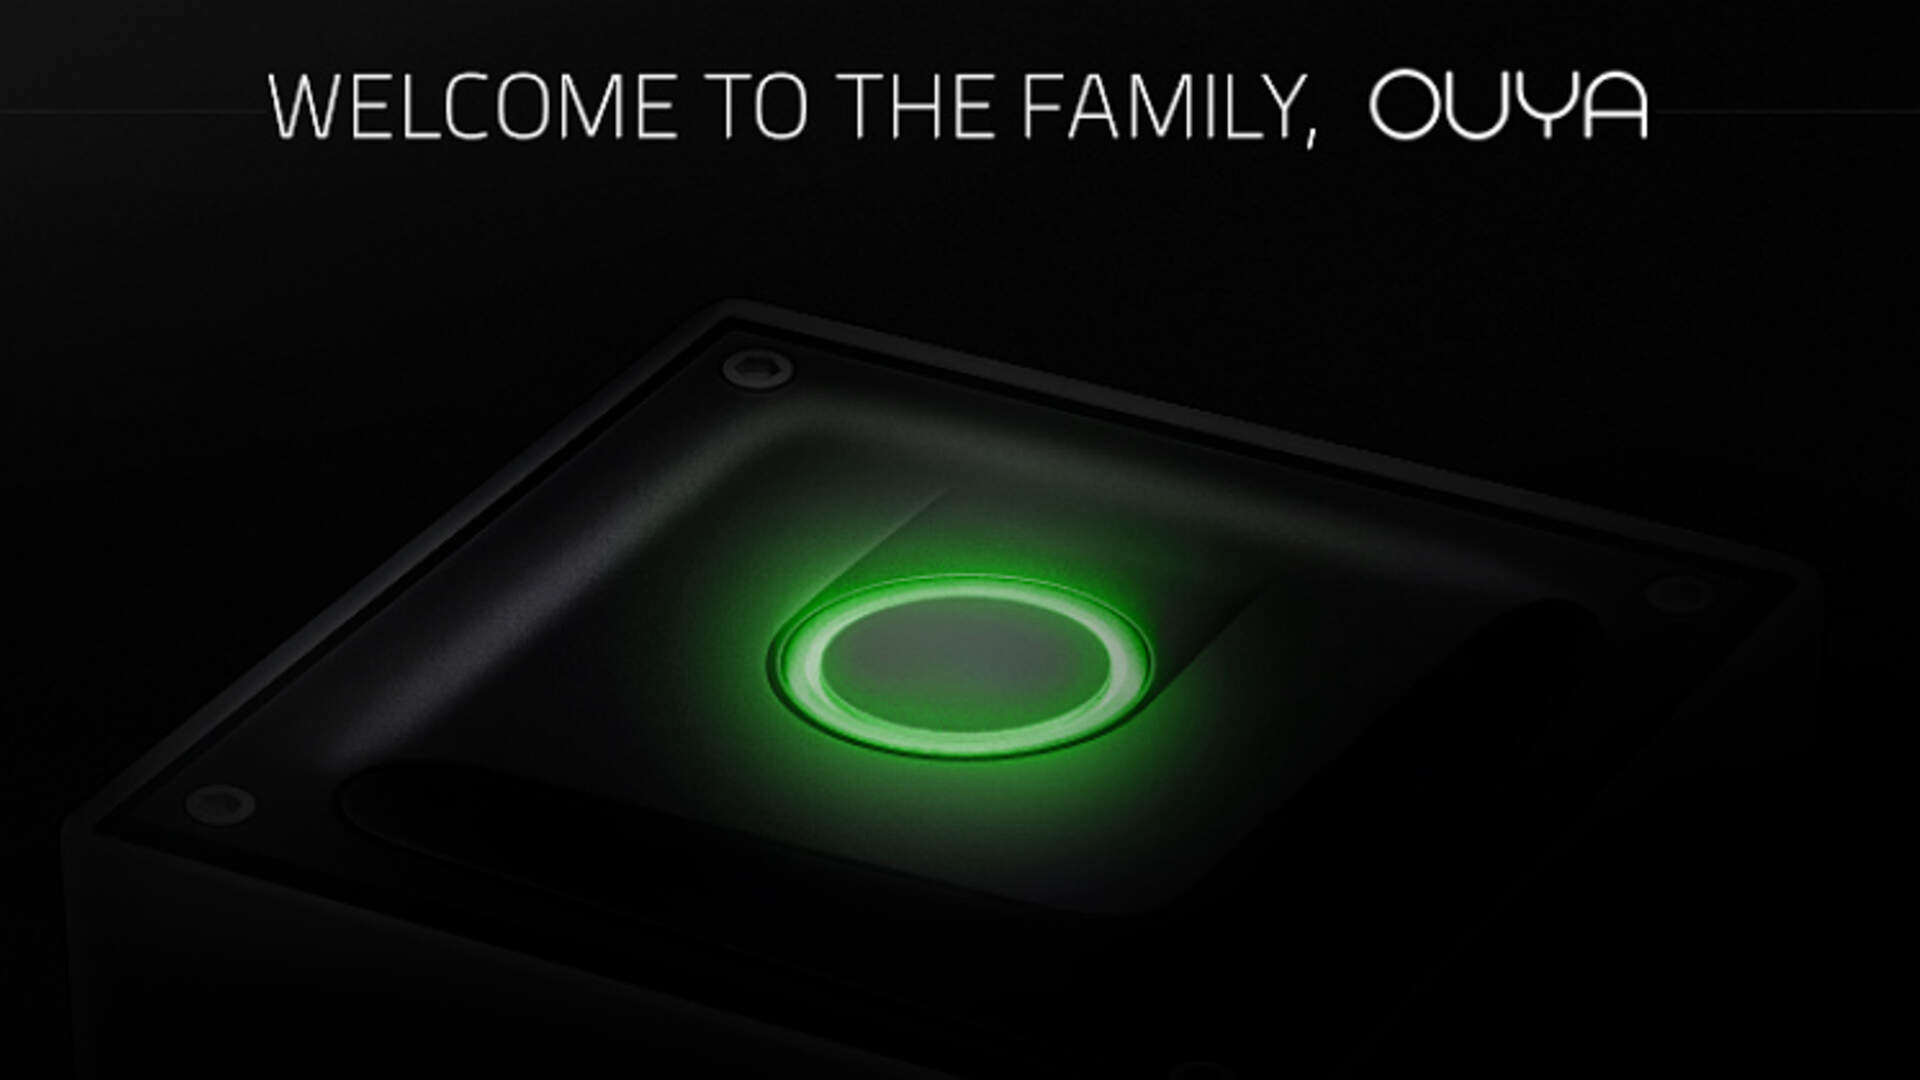 Razer's Acquisition of Ouya Won't Fix the Android Microconsole Problem